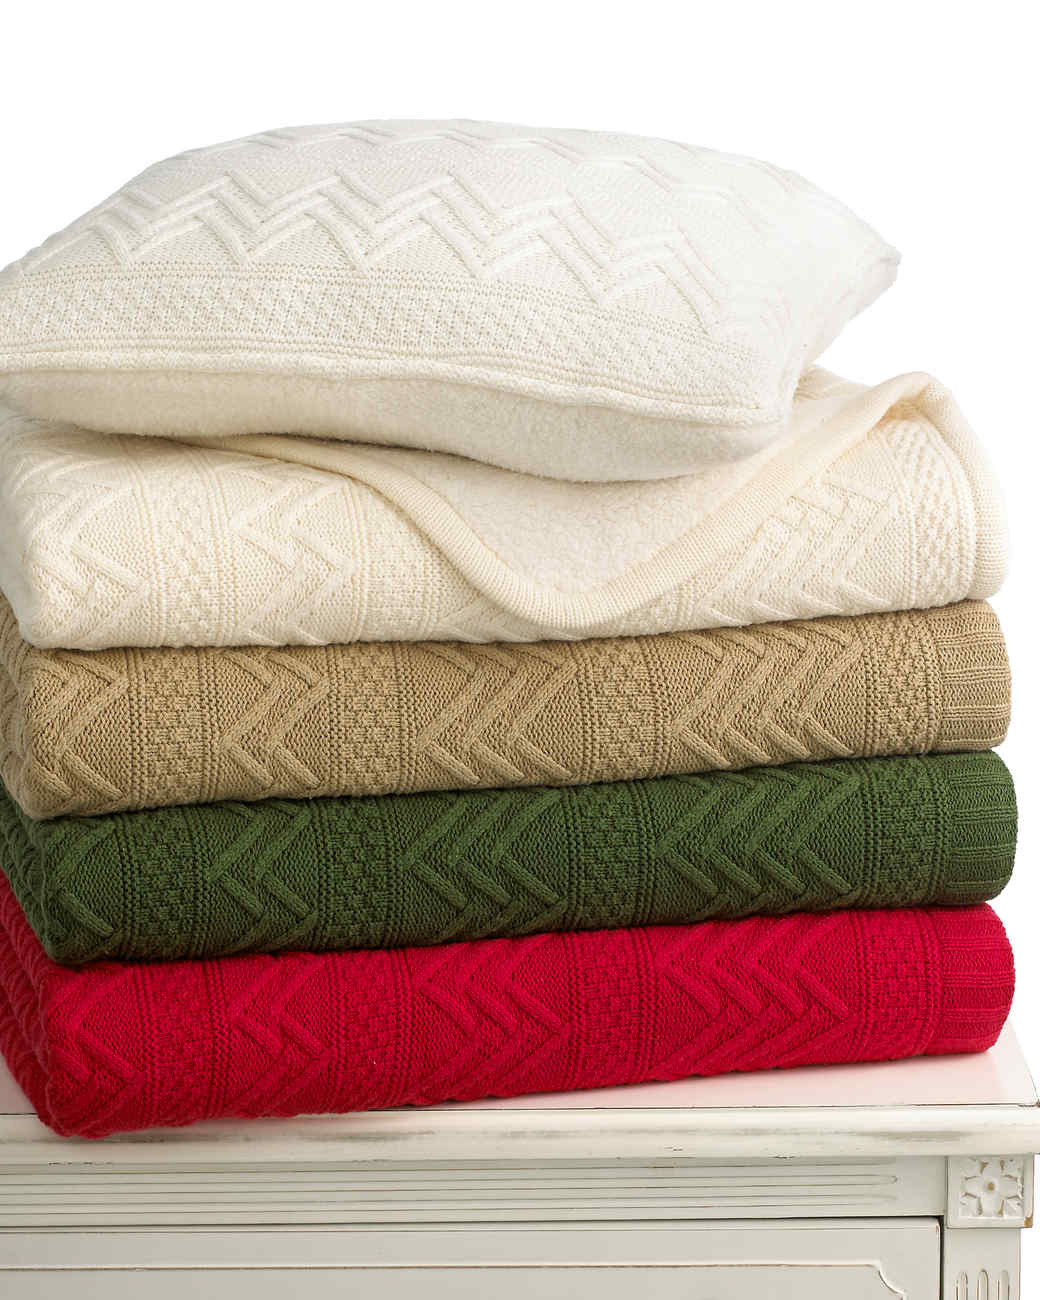 macys-cable-knit-throw.jpg